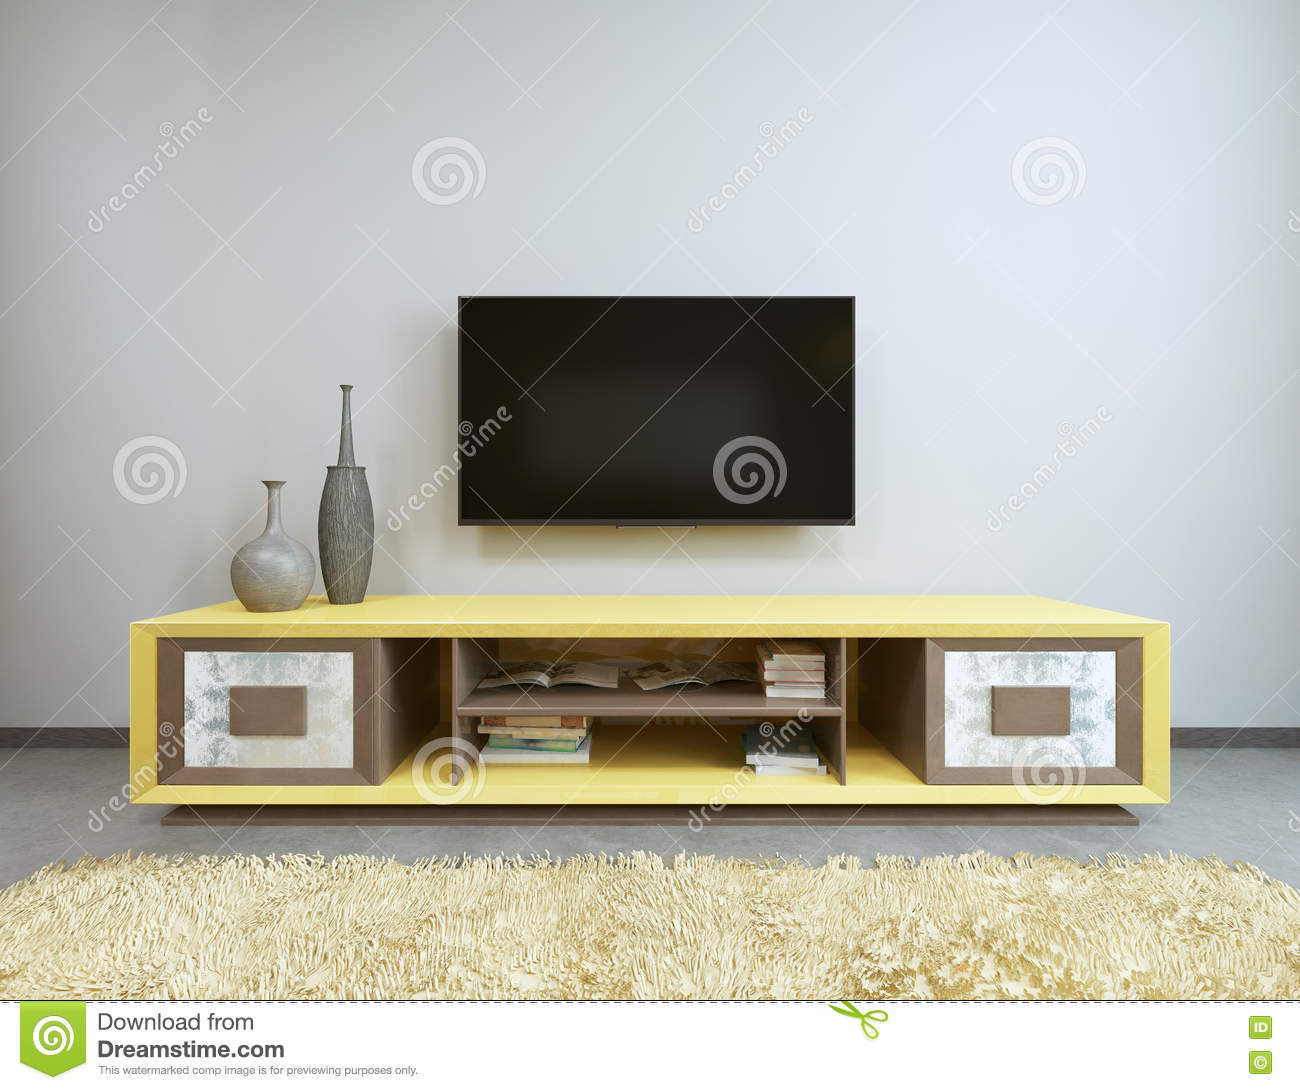 tv unit in living room with yellow tv on the wall stock tv unit in living room with yellow tv on the wall stock illustration